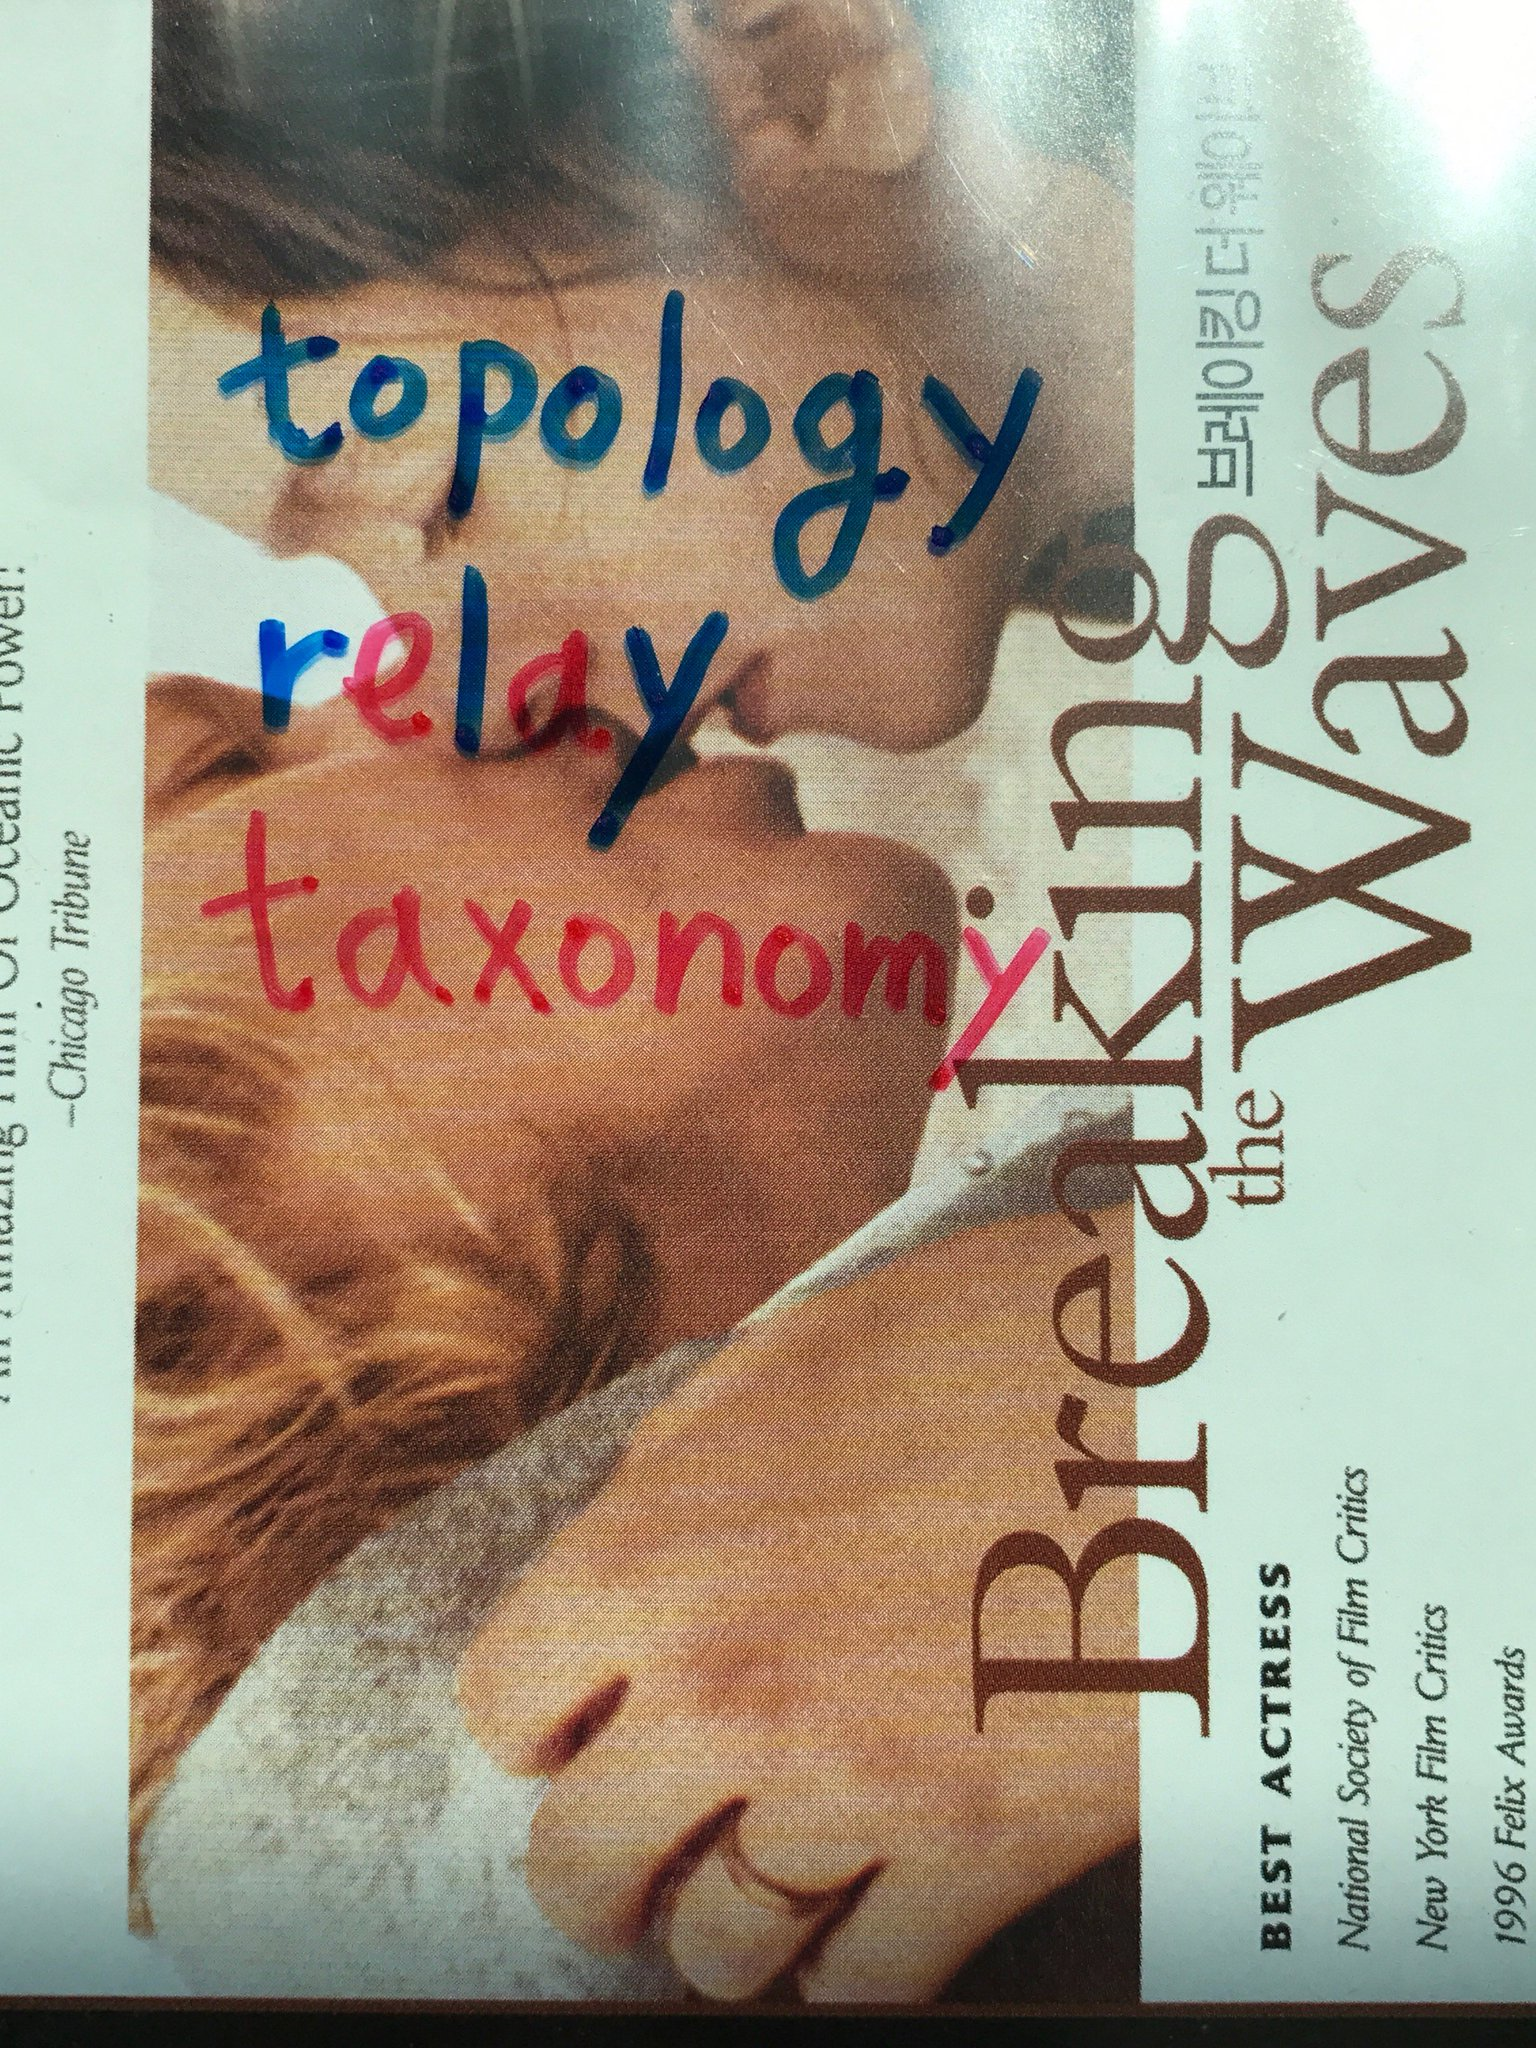 Relay between taxonomy and topology: Metaperspective or Metalayer: Beyond abstract: https://t.co/sxSIz9KMz7